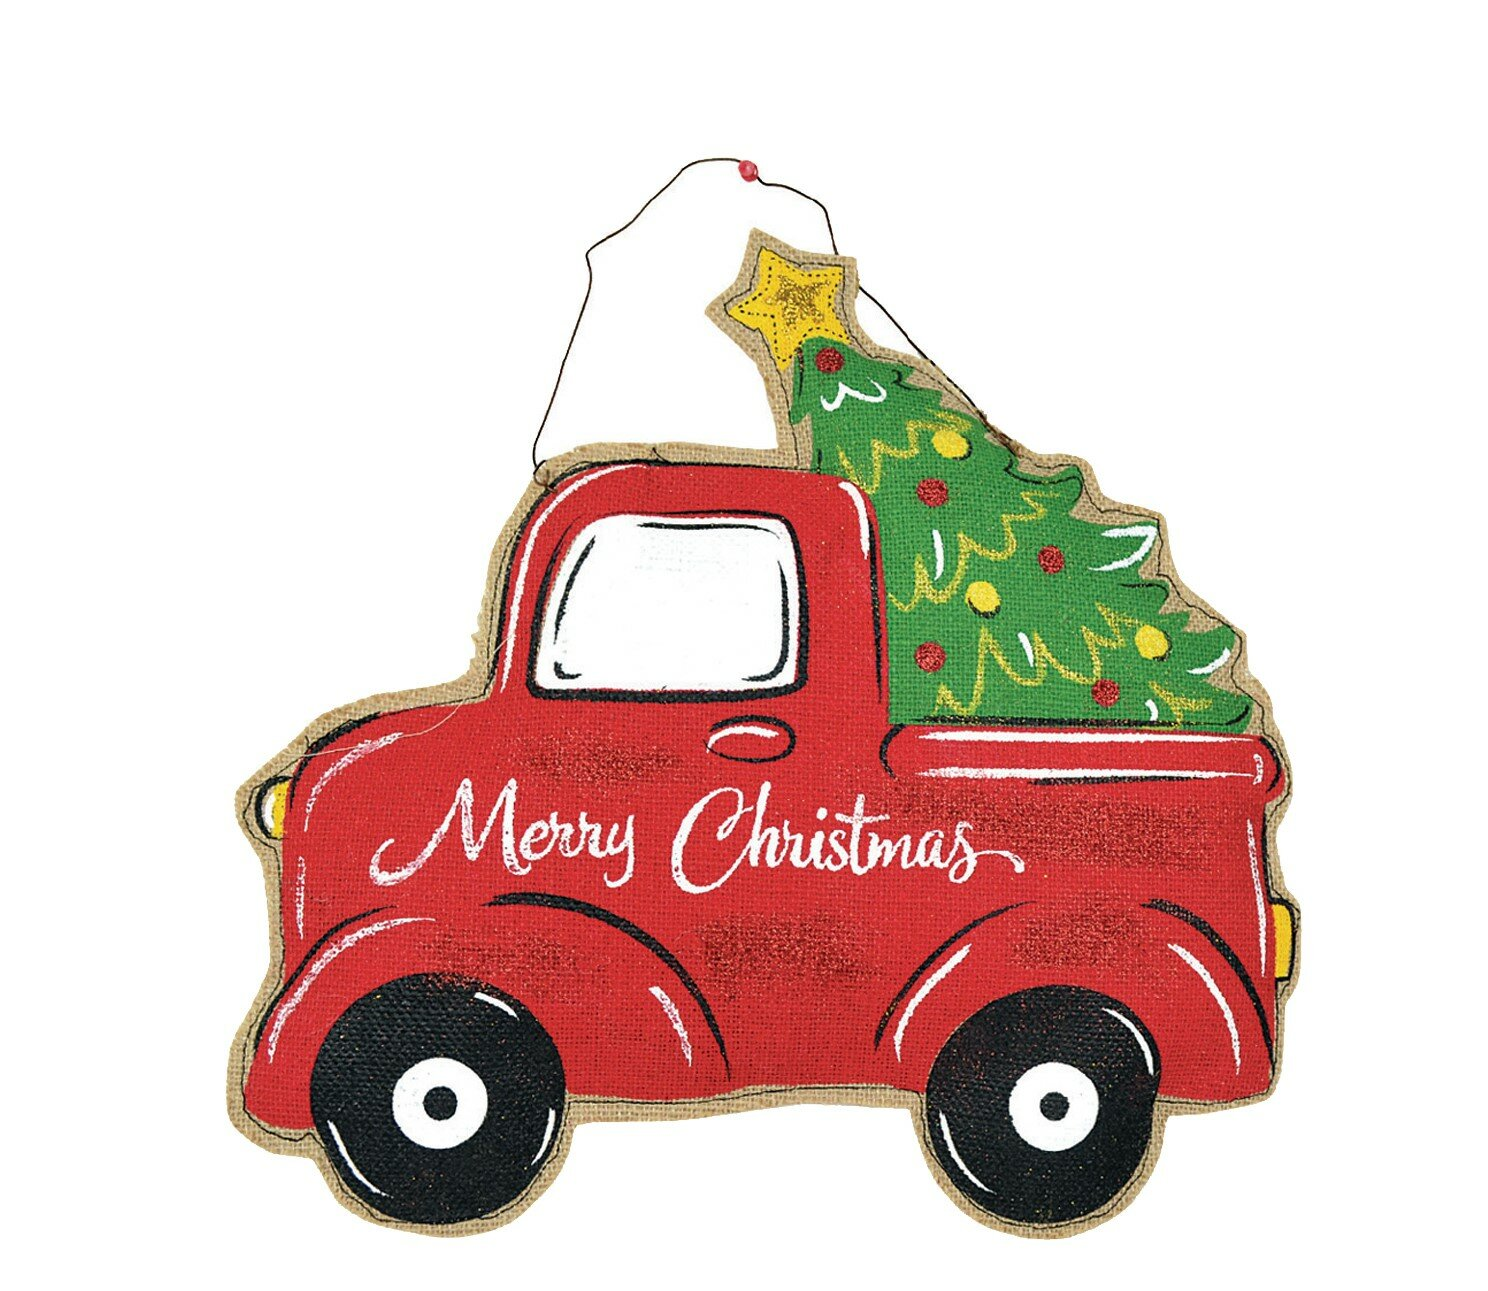 The Holiday Aisle Christmas Tree Pick Up Truck Door Hanger Wayfair Learn tips, ticks and more. christmas tree pick up truck door hanger